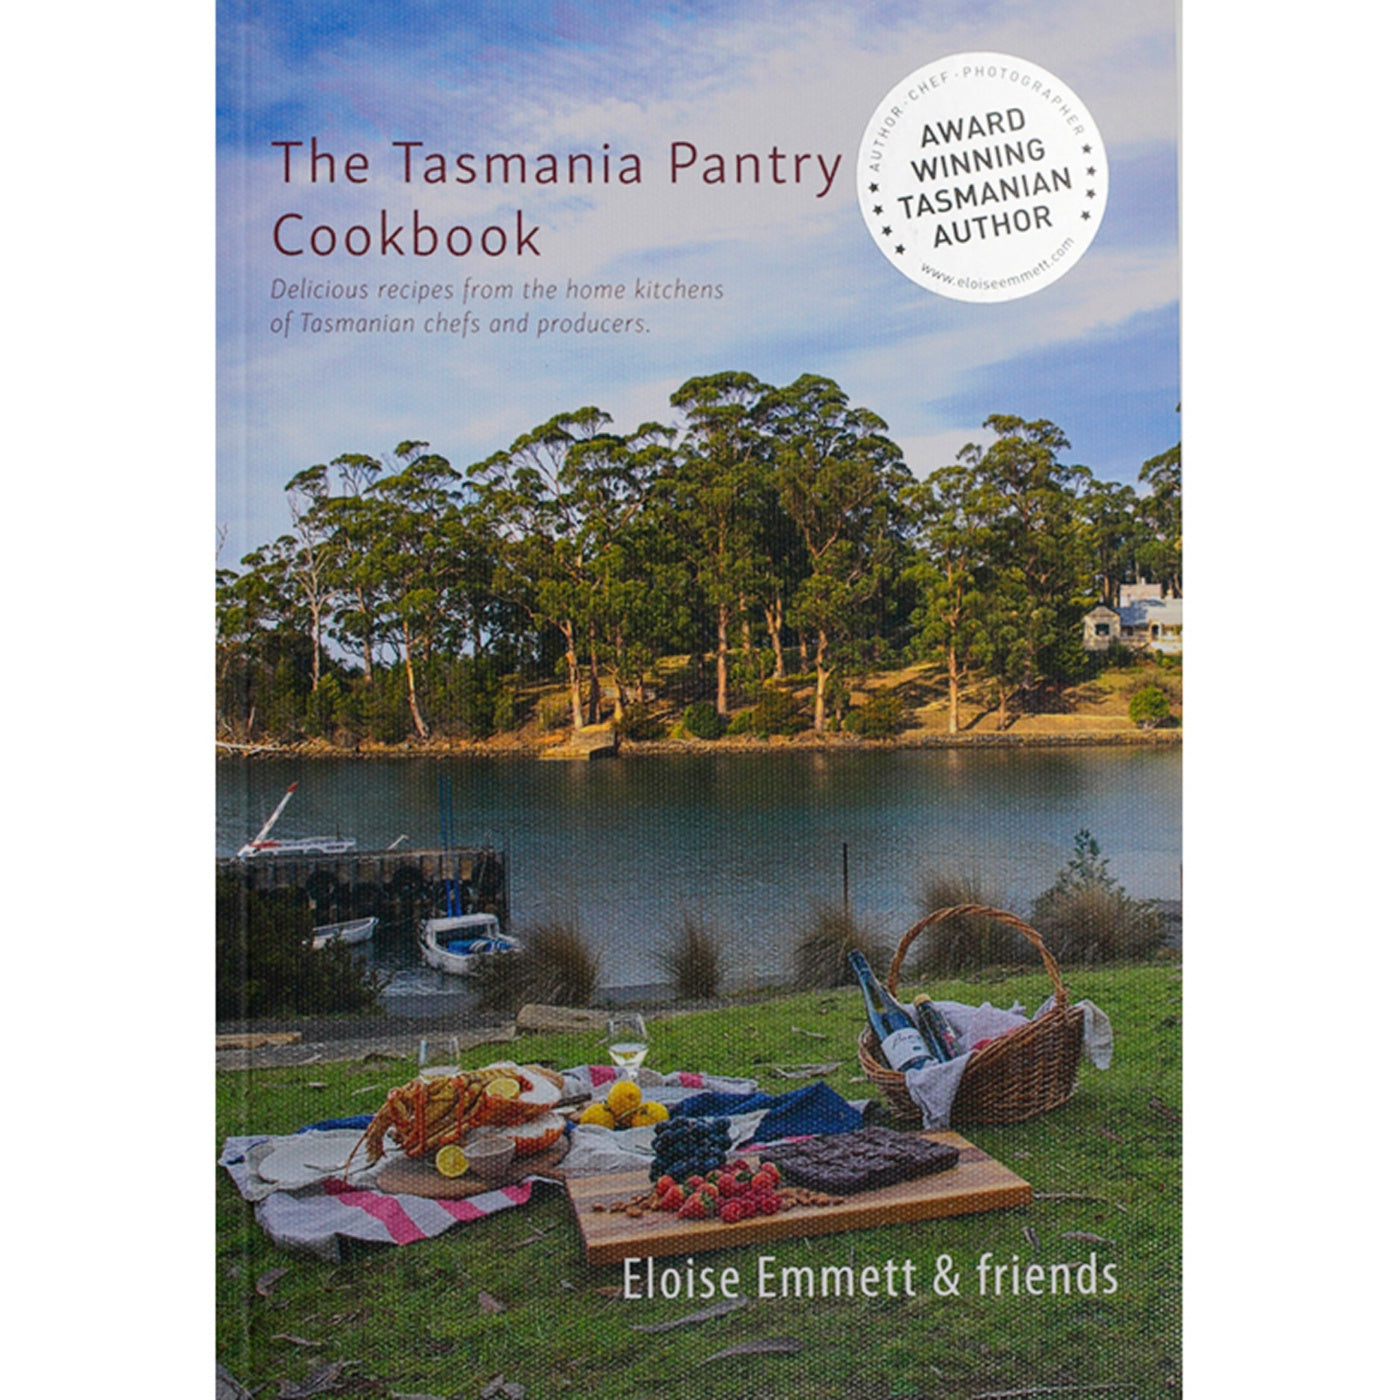 The Tasmania Pantry Cookbook